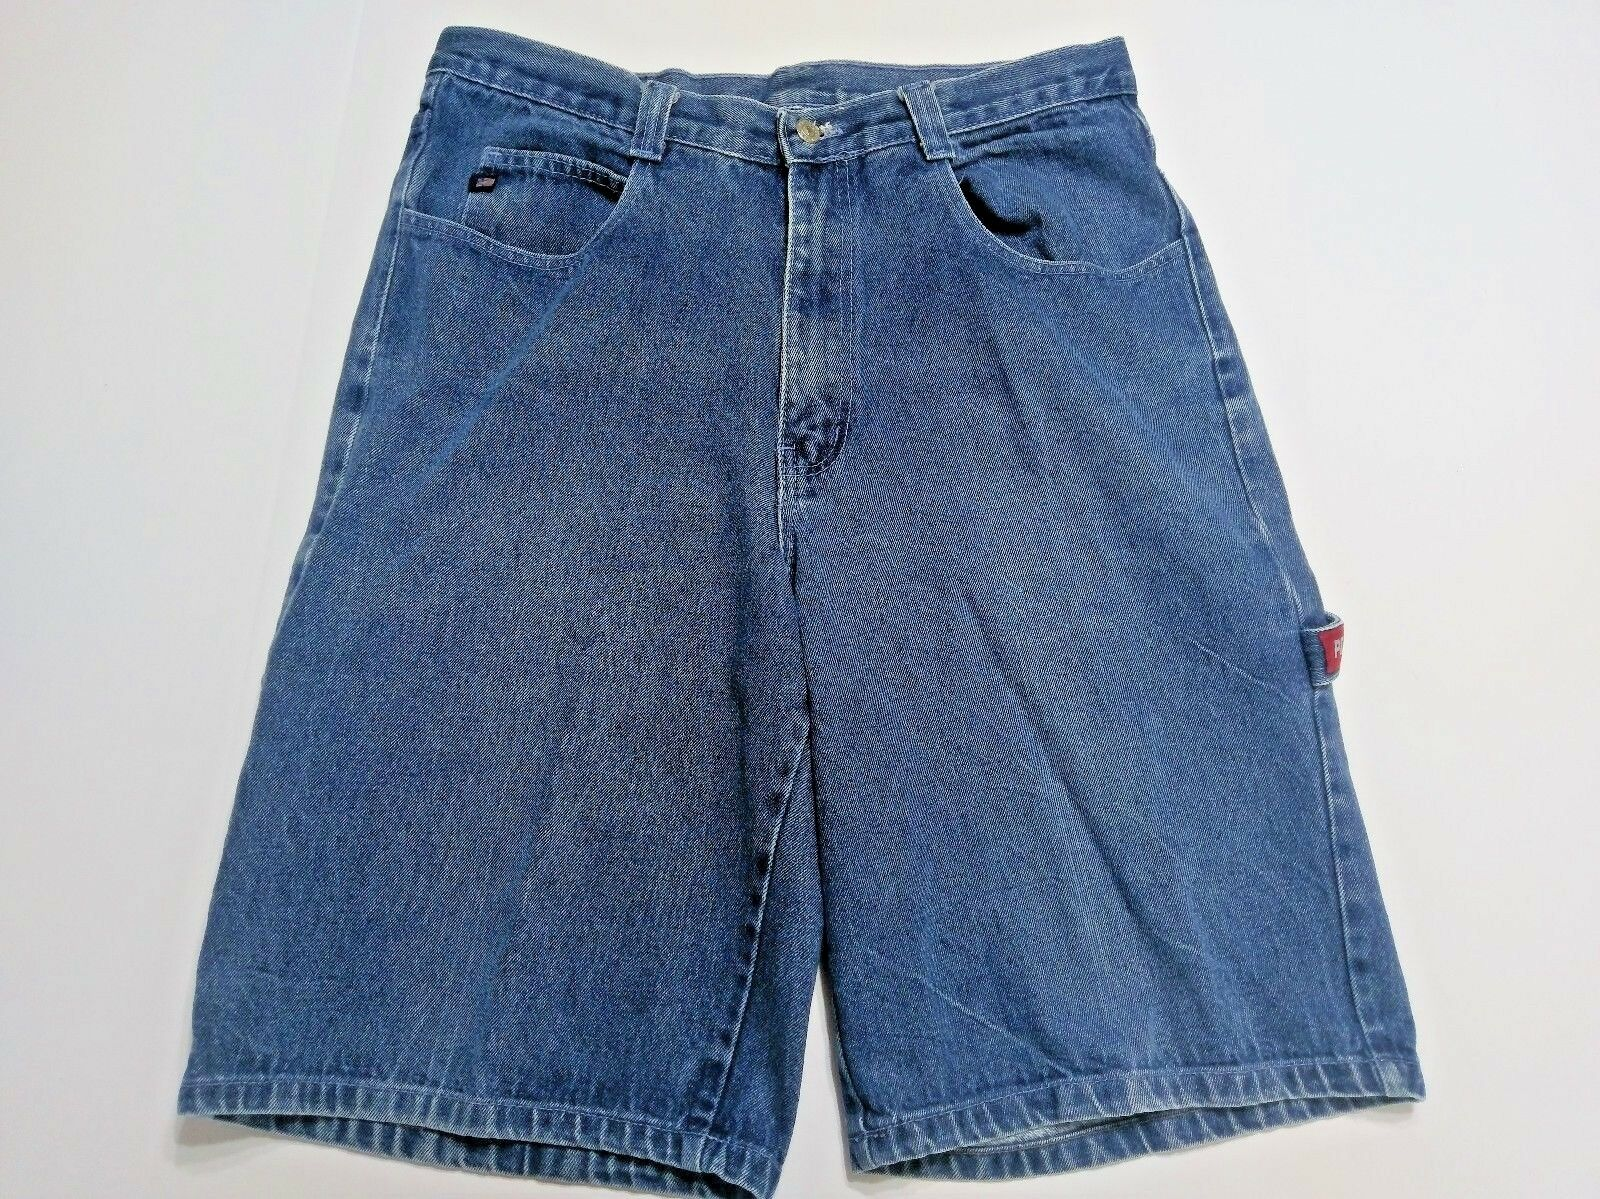 Polo Ralph Lauren Carpenter Denim Jean Shorts Men's 38 Flag Logo Medium Wash